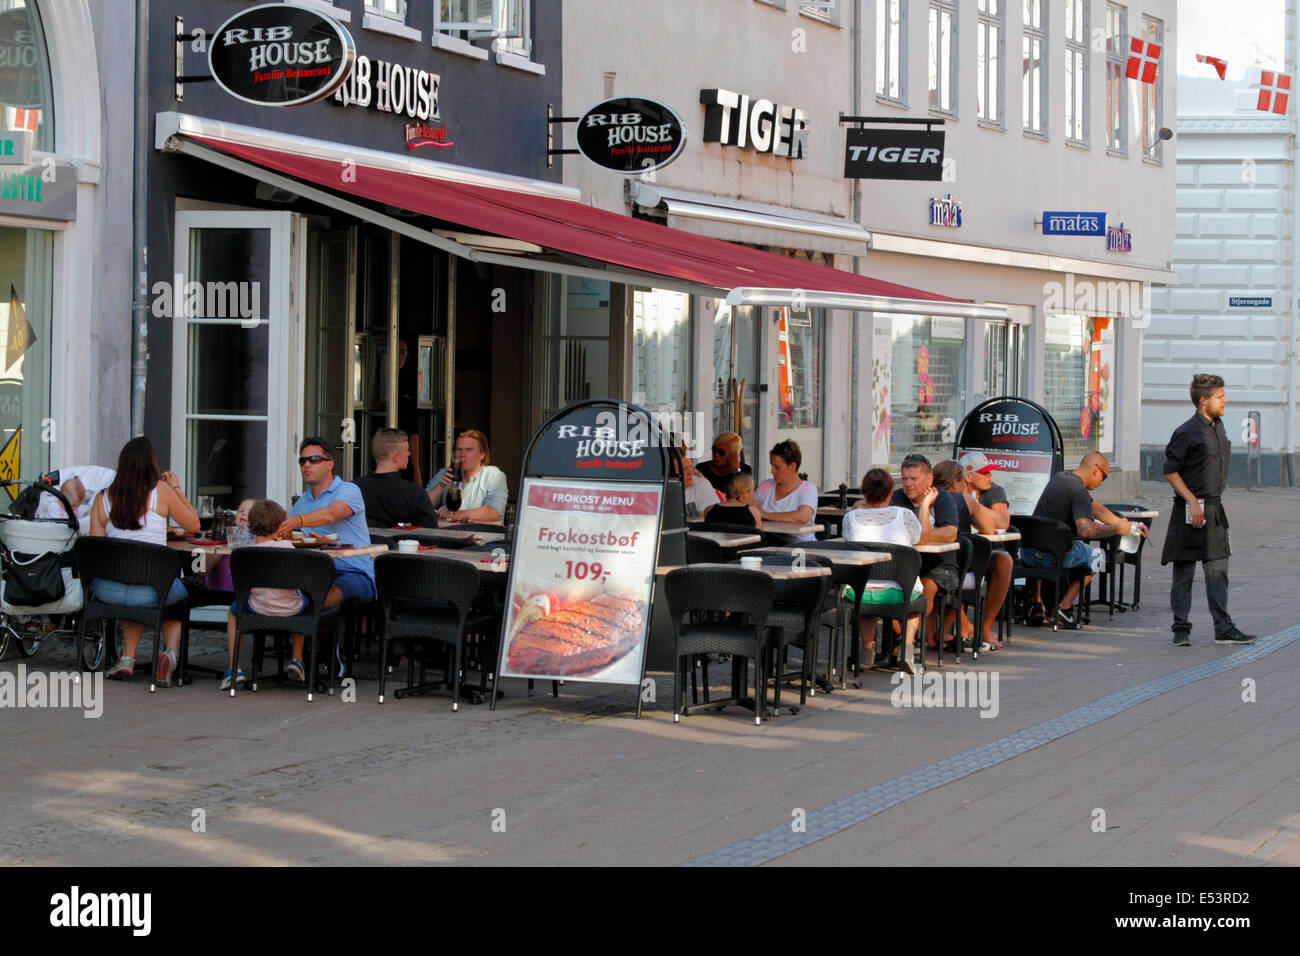 Restaurant Rib House on Stengade in Elsinore / Helsingør on a late summer afternoon - Stock Image